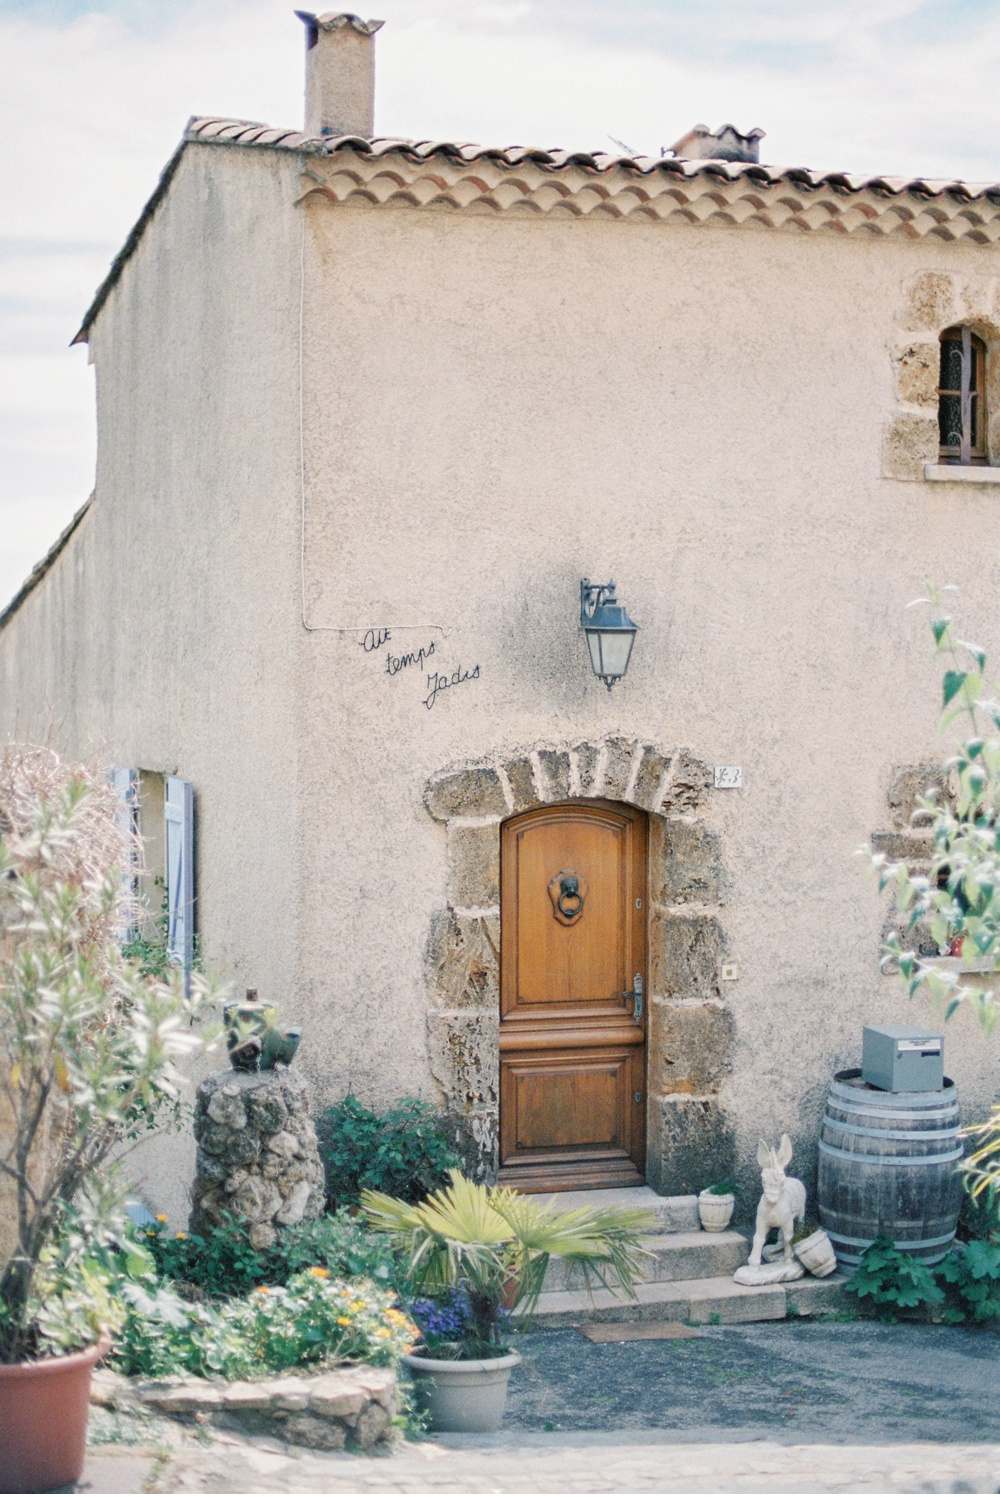 Provence_France_WeddingPhotographer©MadalinaSheldon_0005.jpg